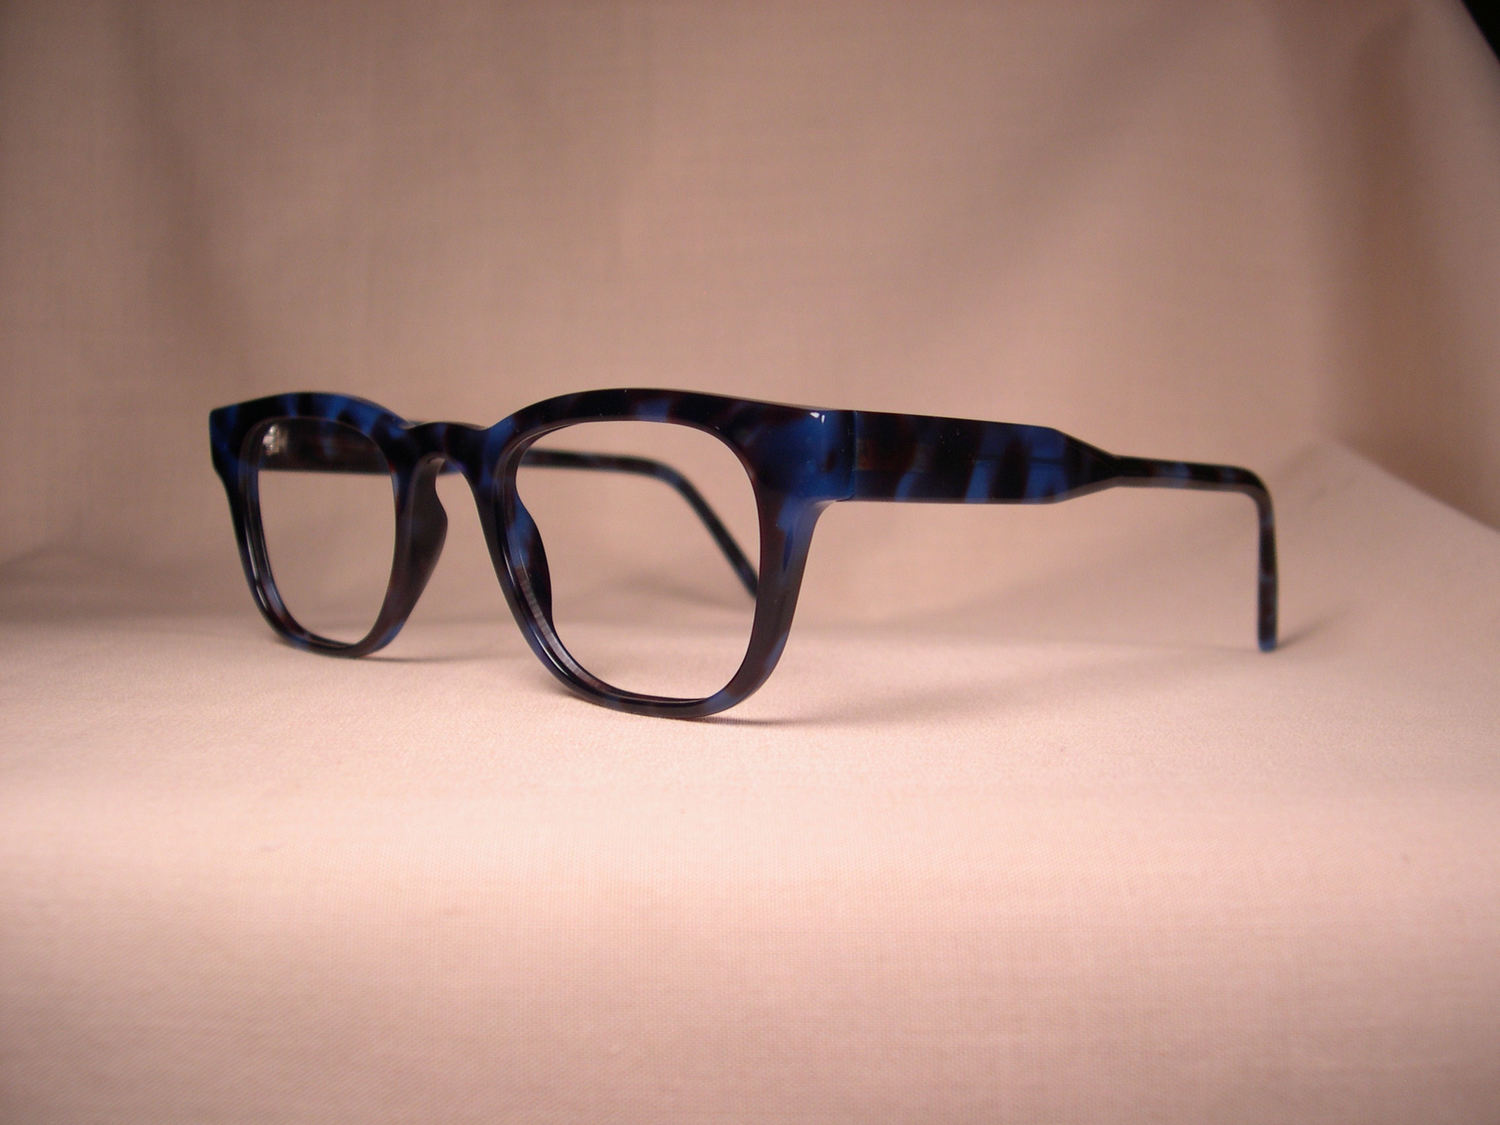 Indivijual-Custom-Glasses-17.jpg